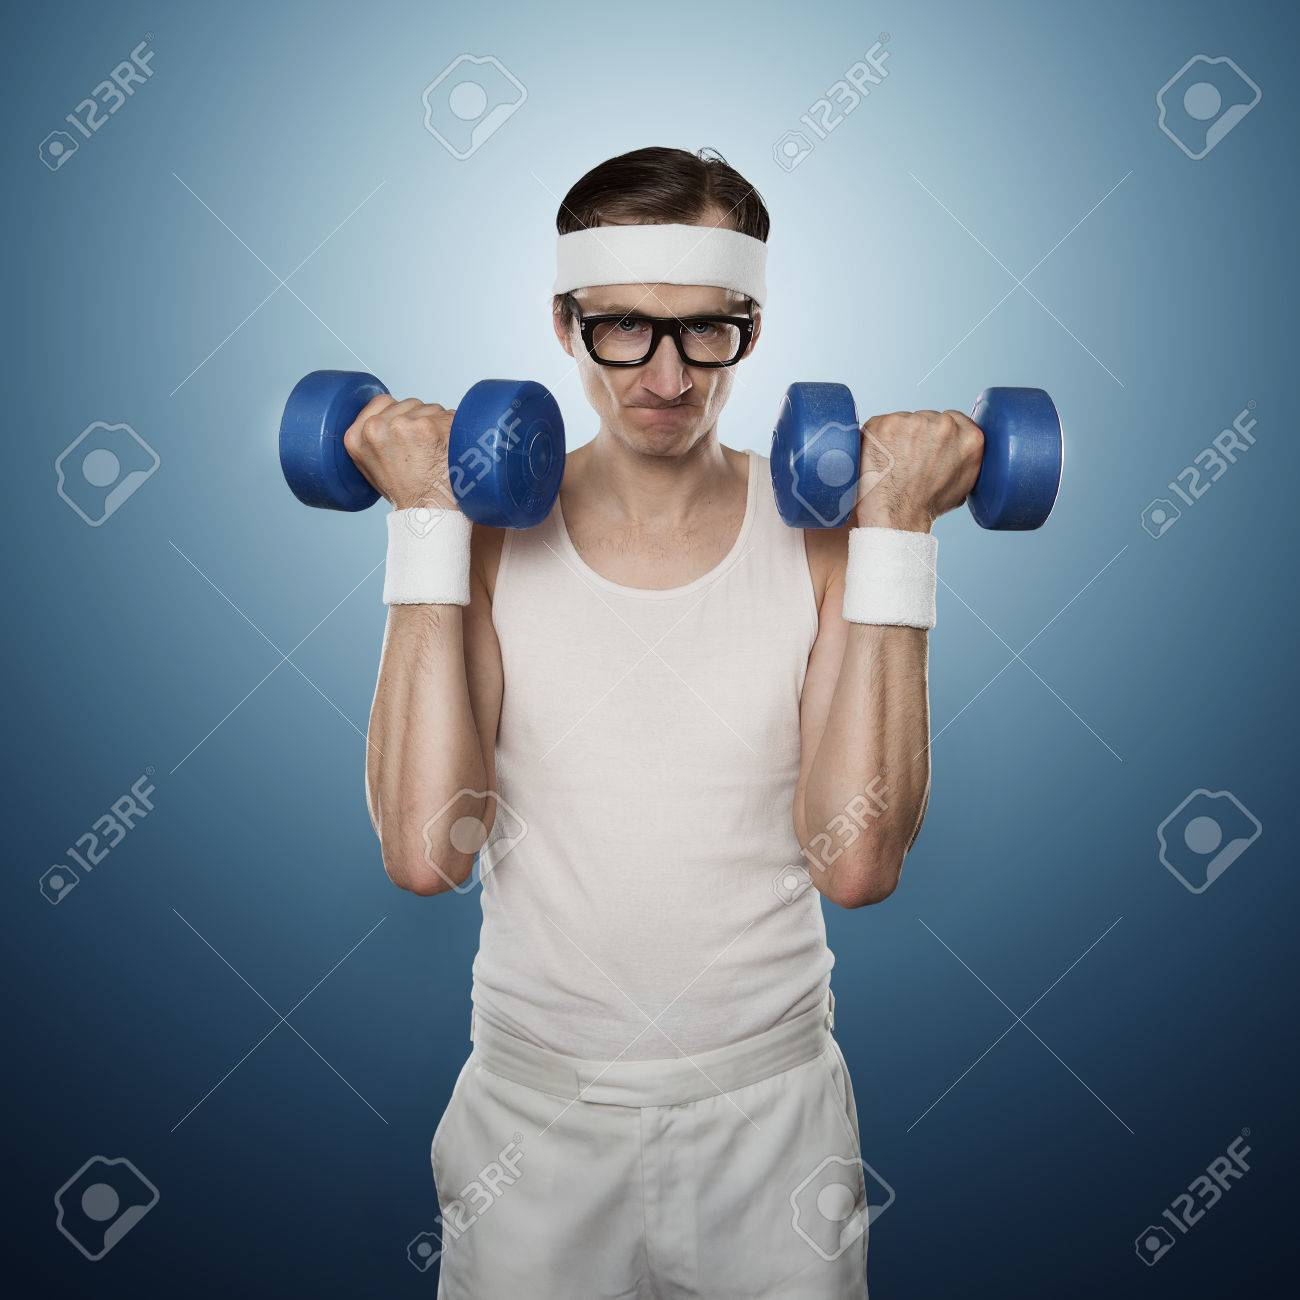 Funny sport nerd lifting weights isolated on blue background Standard-Bild - 47395962